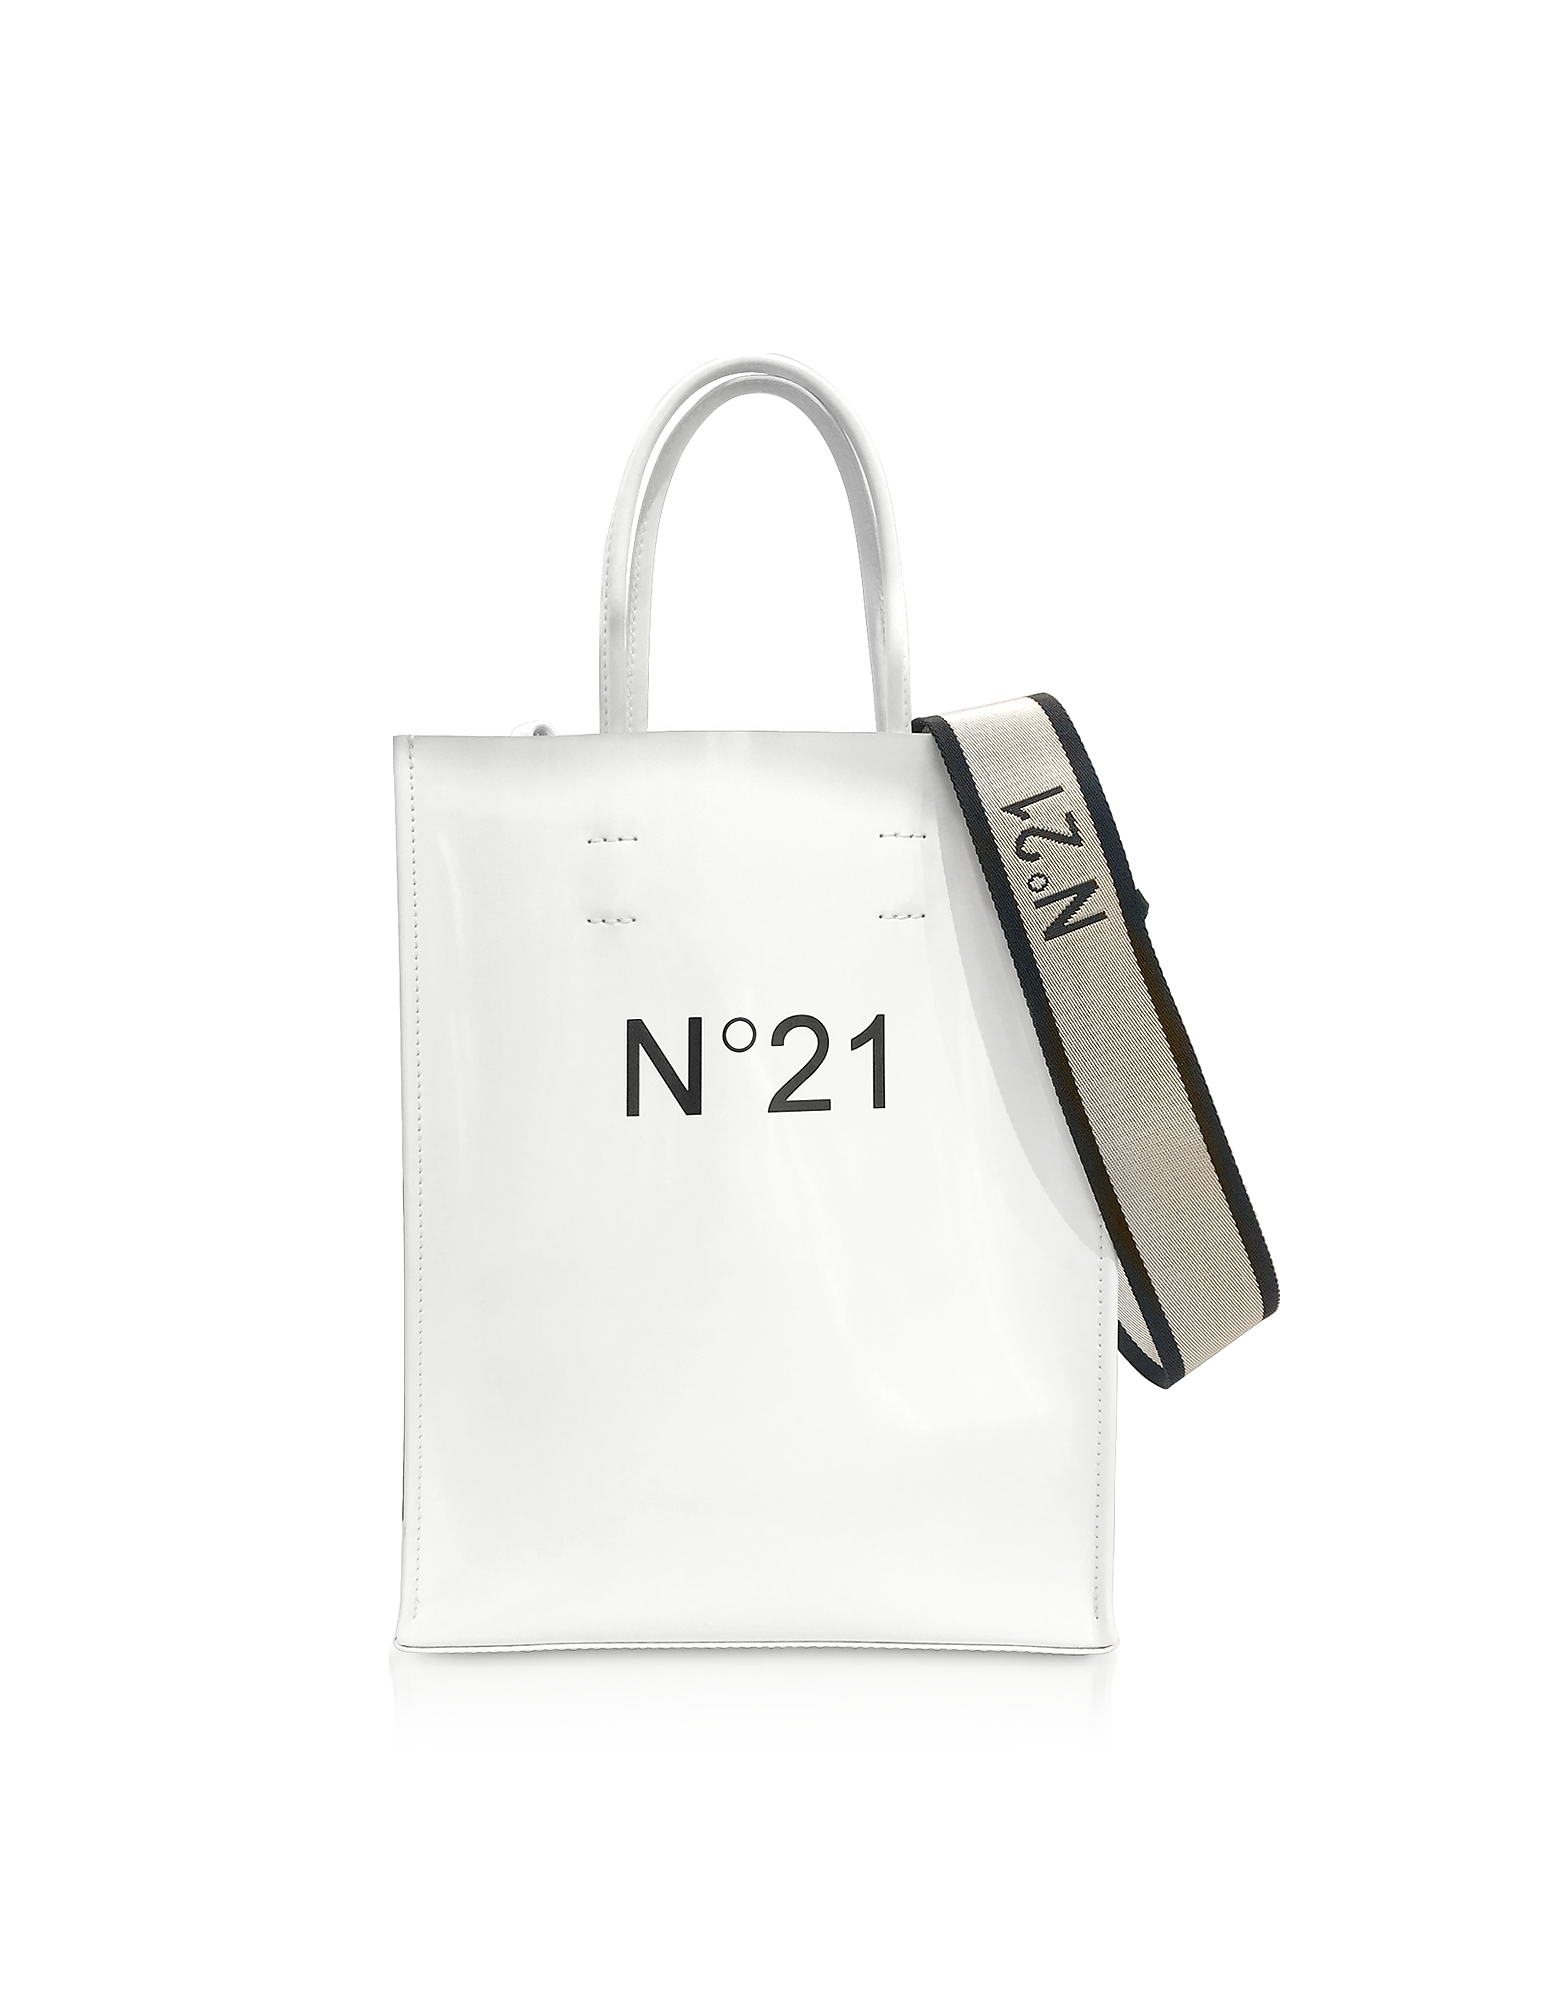 N°21 Handbags, White Patent Eco-Leather Small Tote Bag